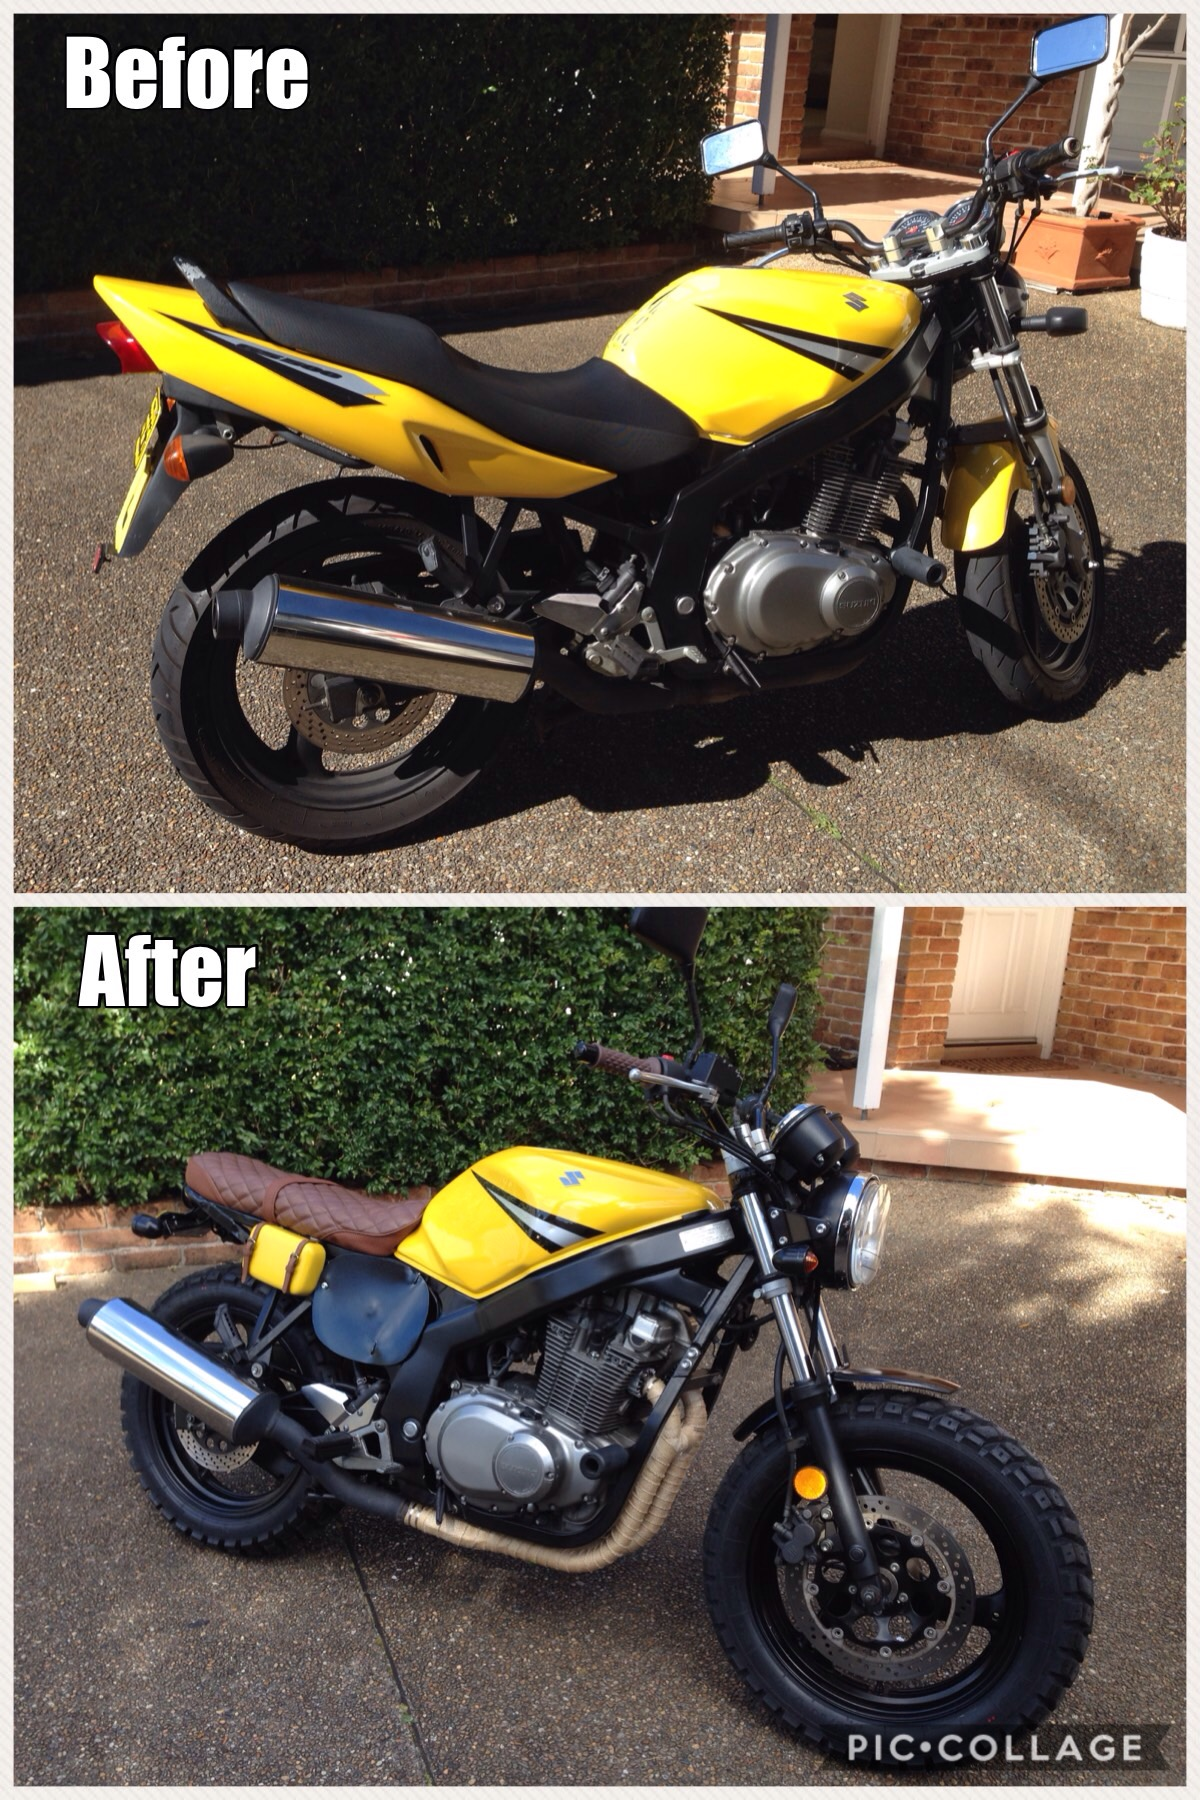 GS500 before and after the scrambler build